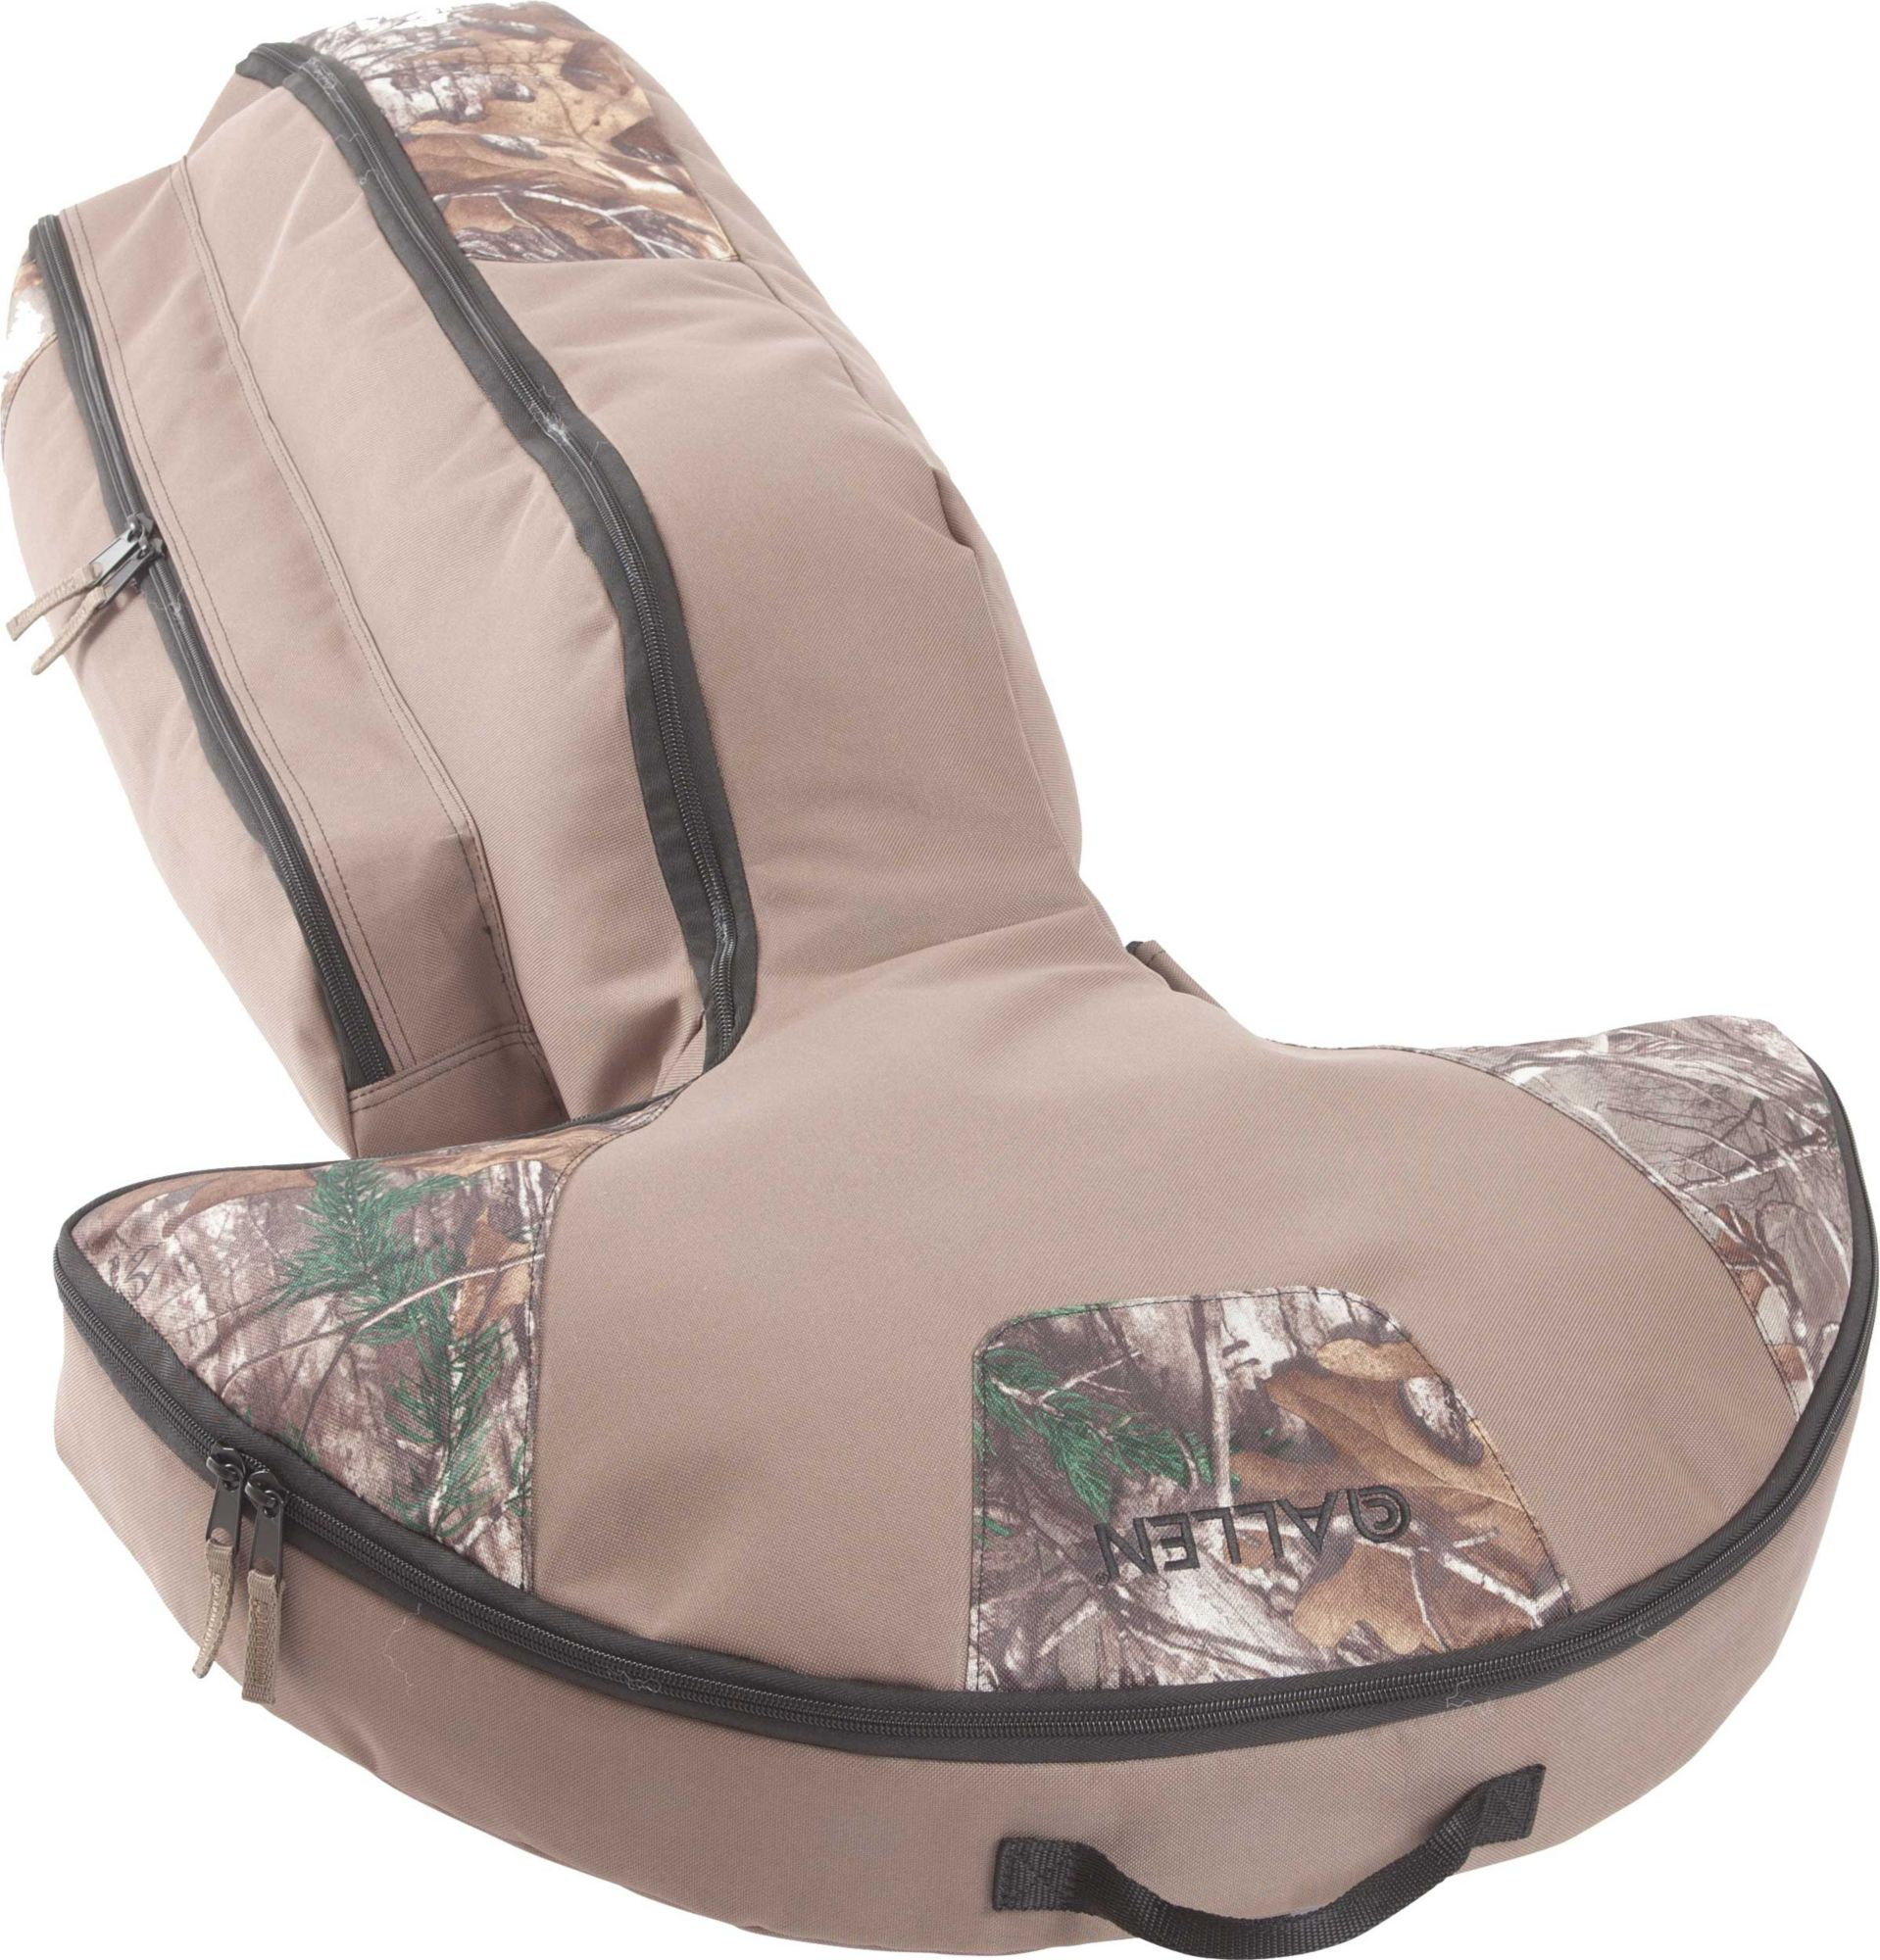 Allen Force Crossbow Case, Size: Small thumbnail